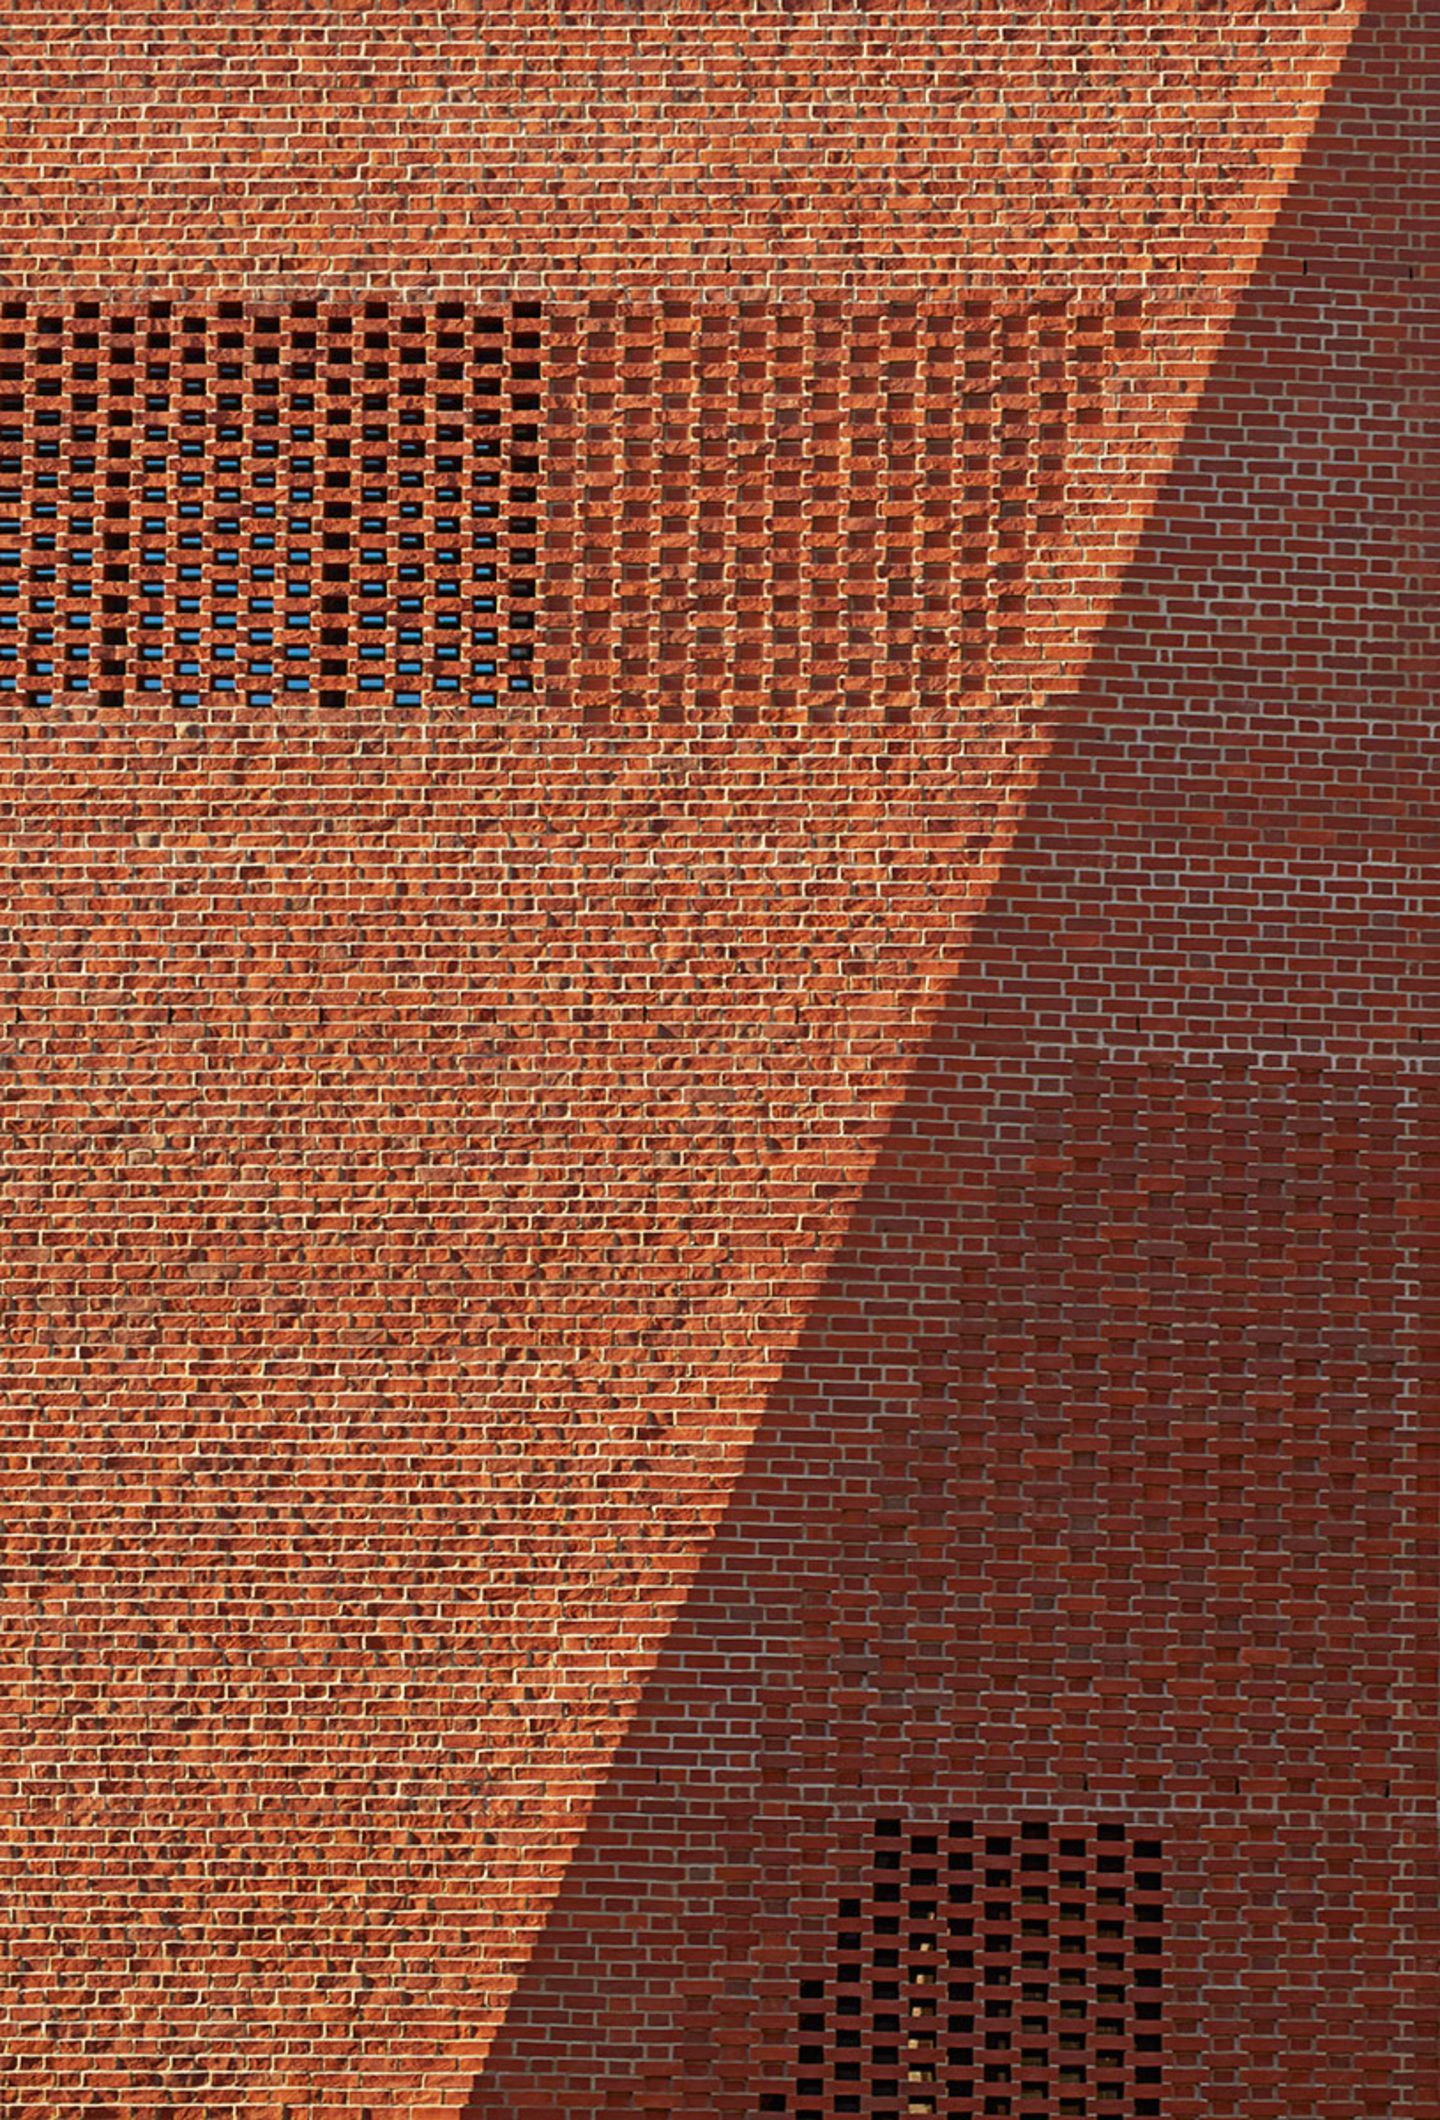 O'Donnell + Tuomey Architects, Dennis Gilbert · Saw Swee Hock Student Centre, London School of Economics · Divisare